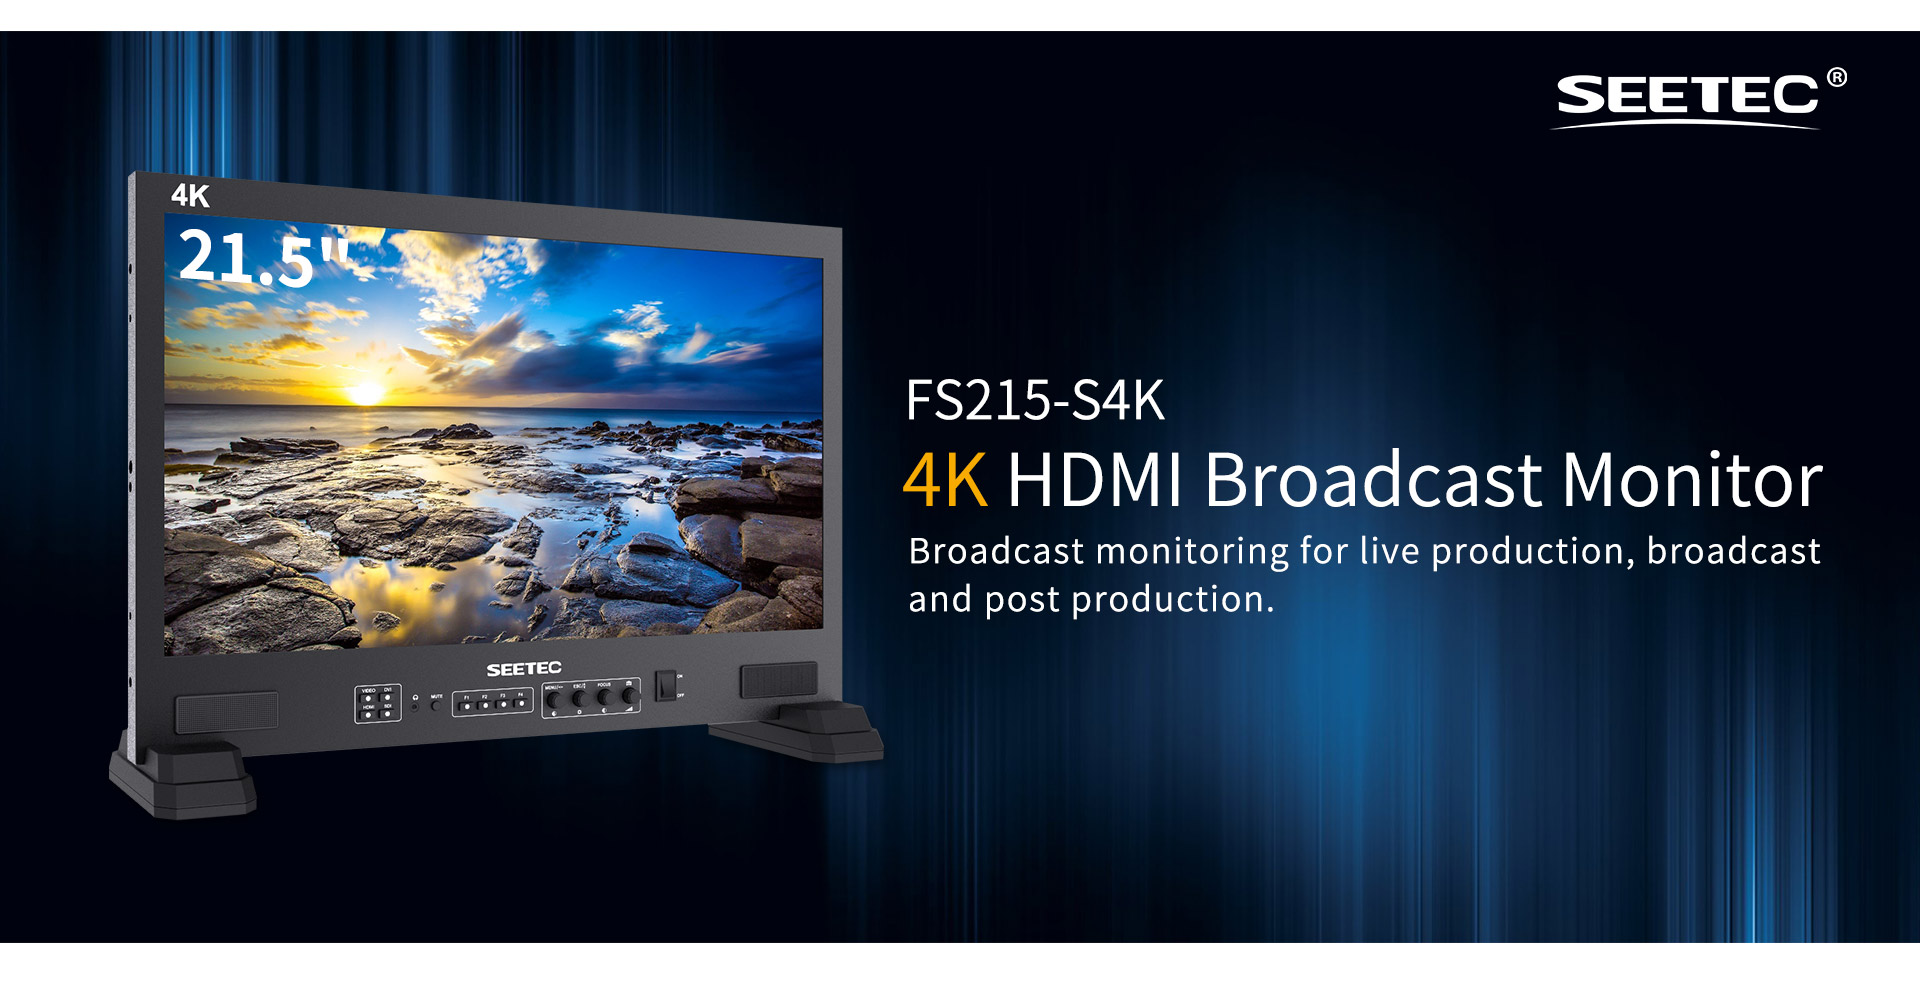 4k-hdmi-broadcast-monitor